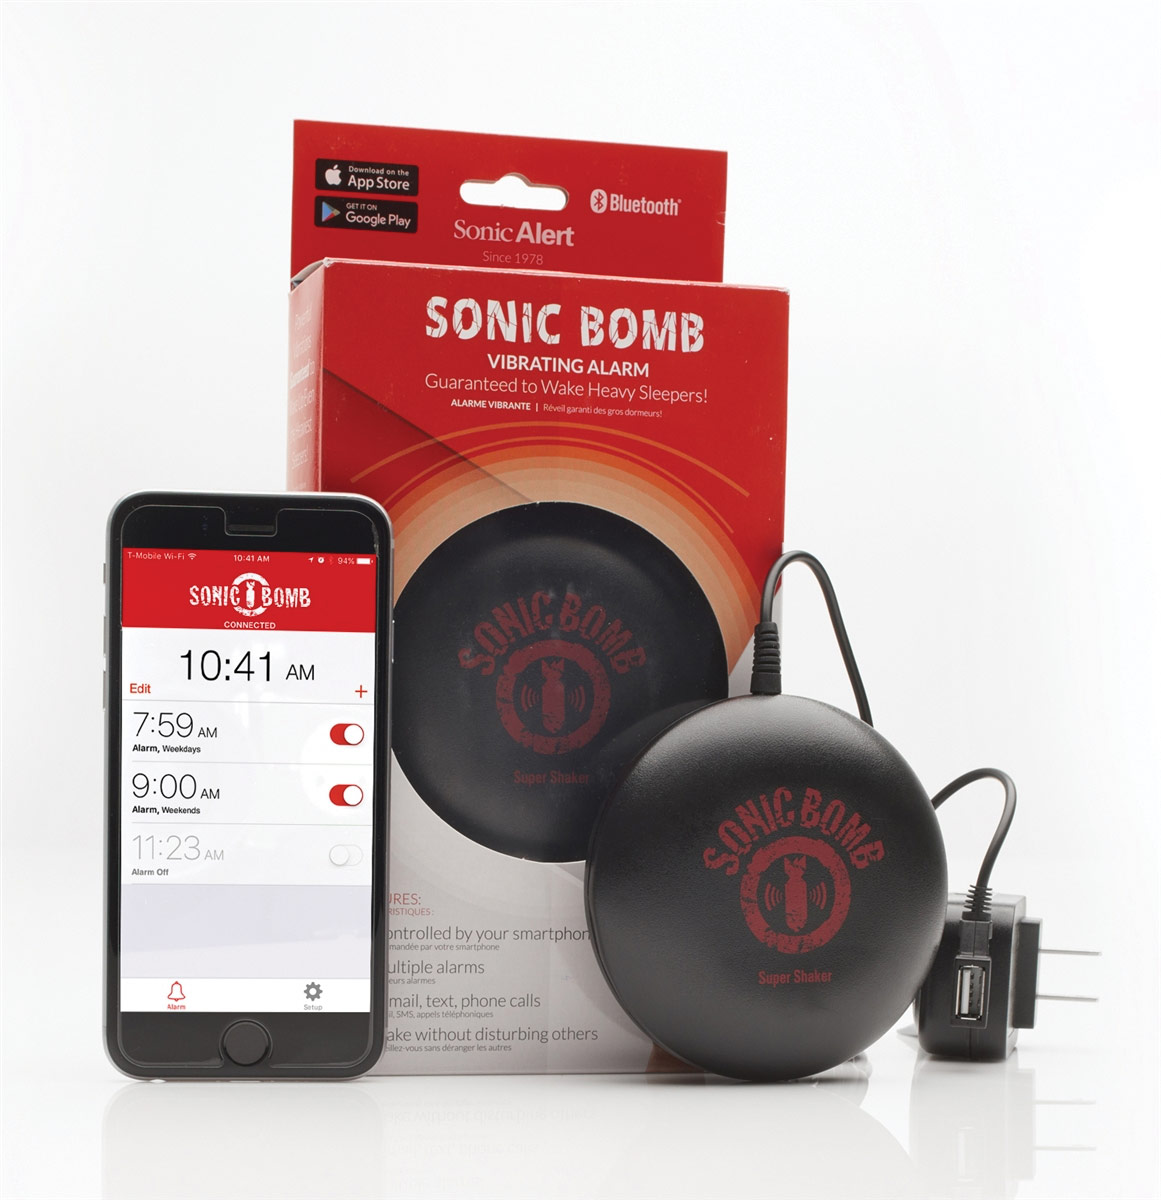 Sonic Bomb Bluetooth Super Shaker Vibrating Alarm - AC-Powered